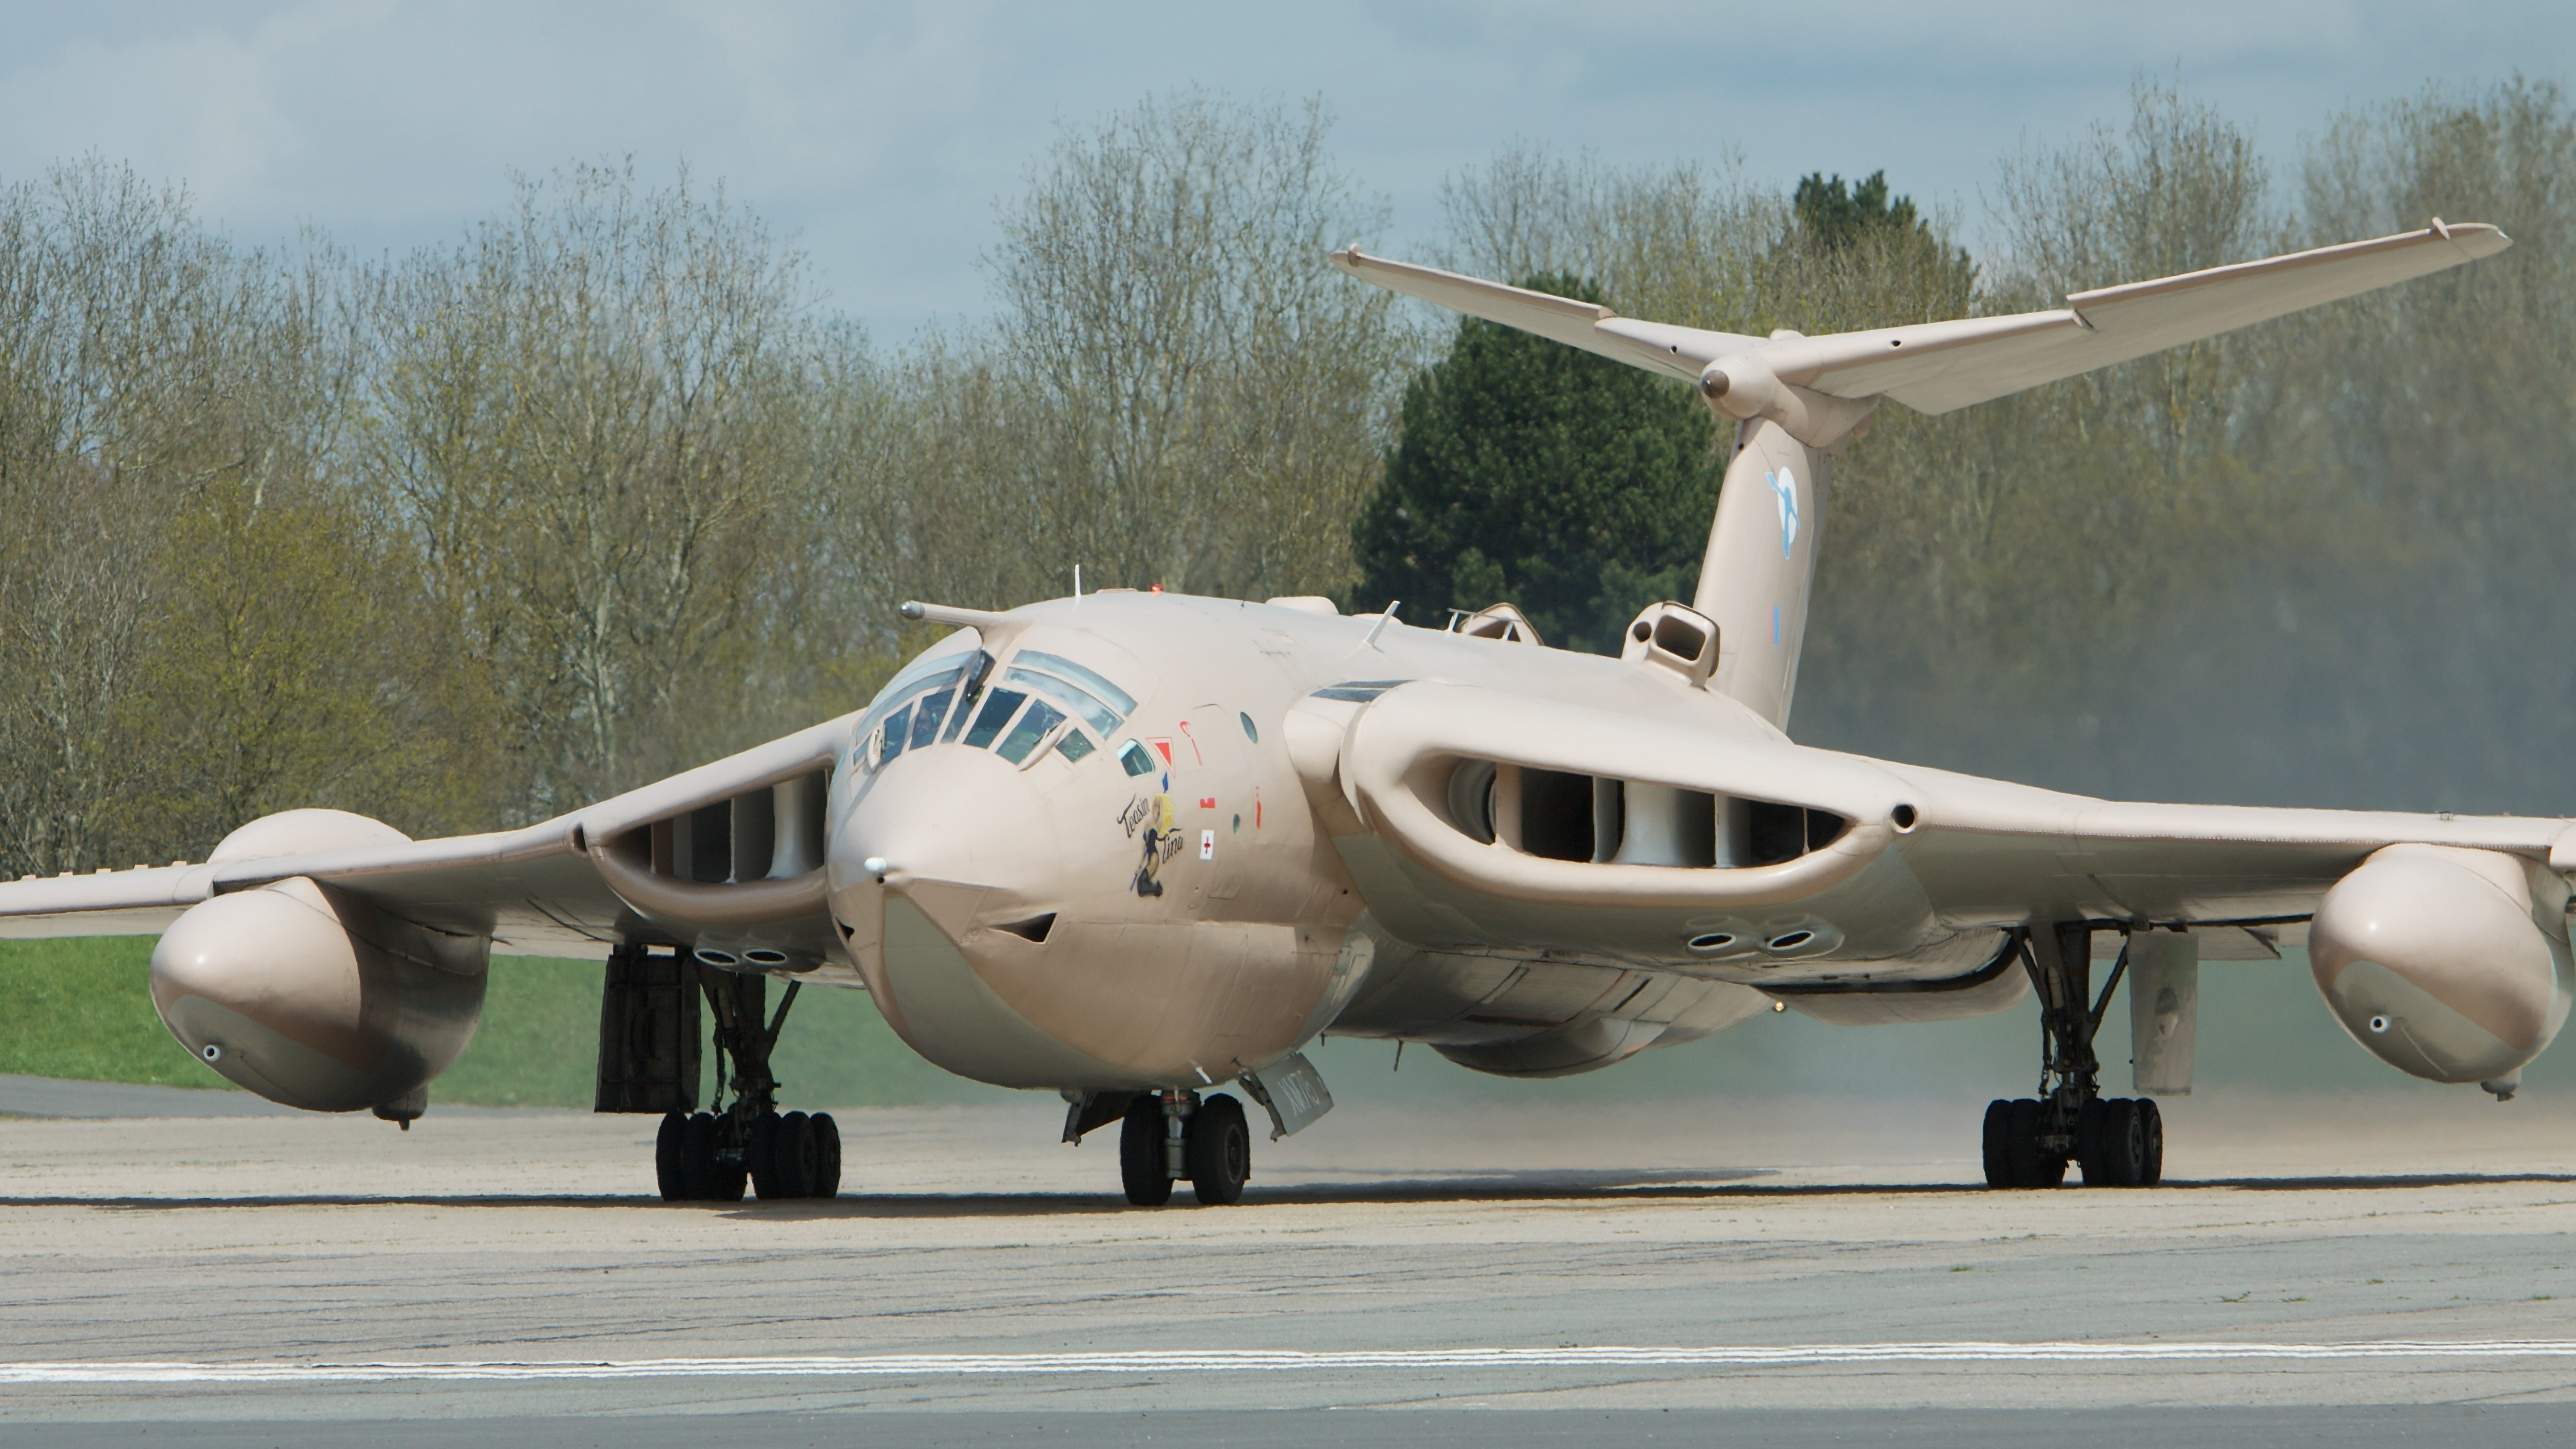 Handley Page Wallpaper, Military / Aircrafts: Handley Page, Victor ...